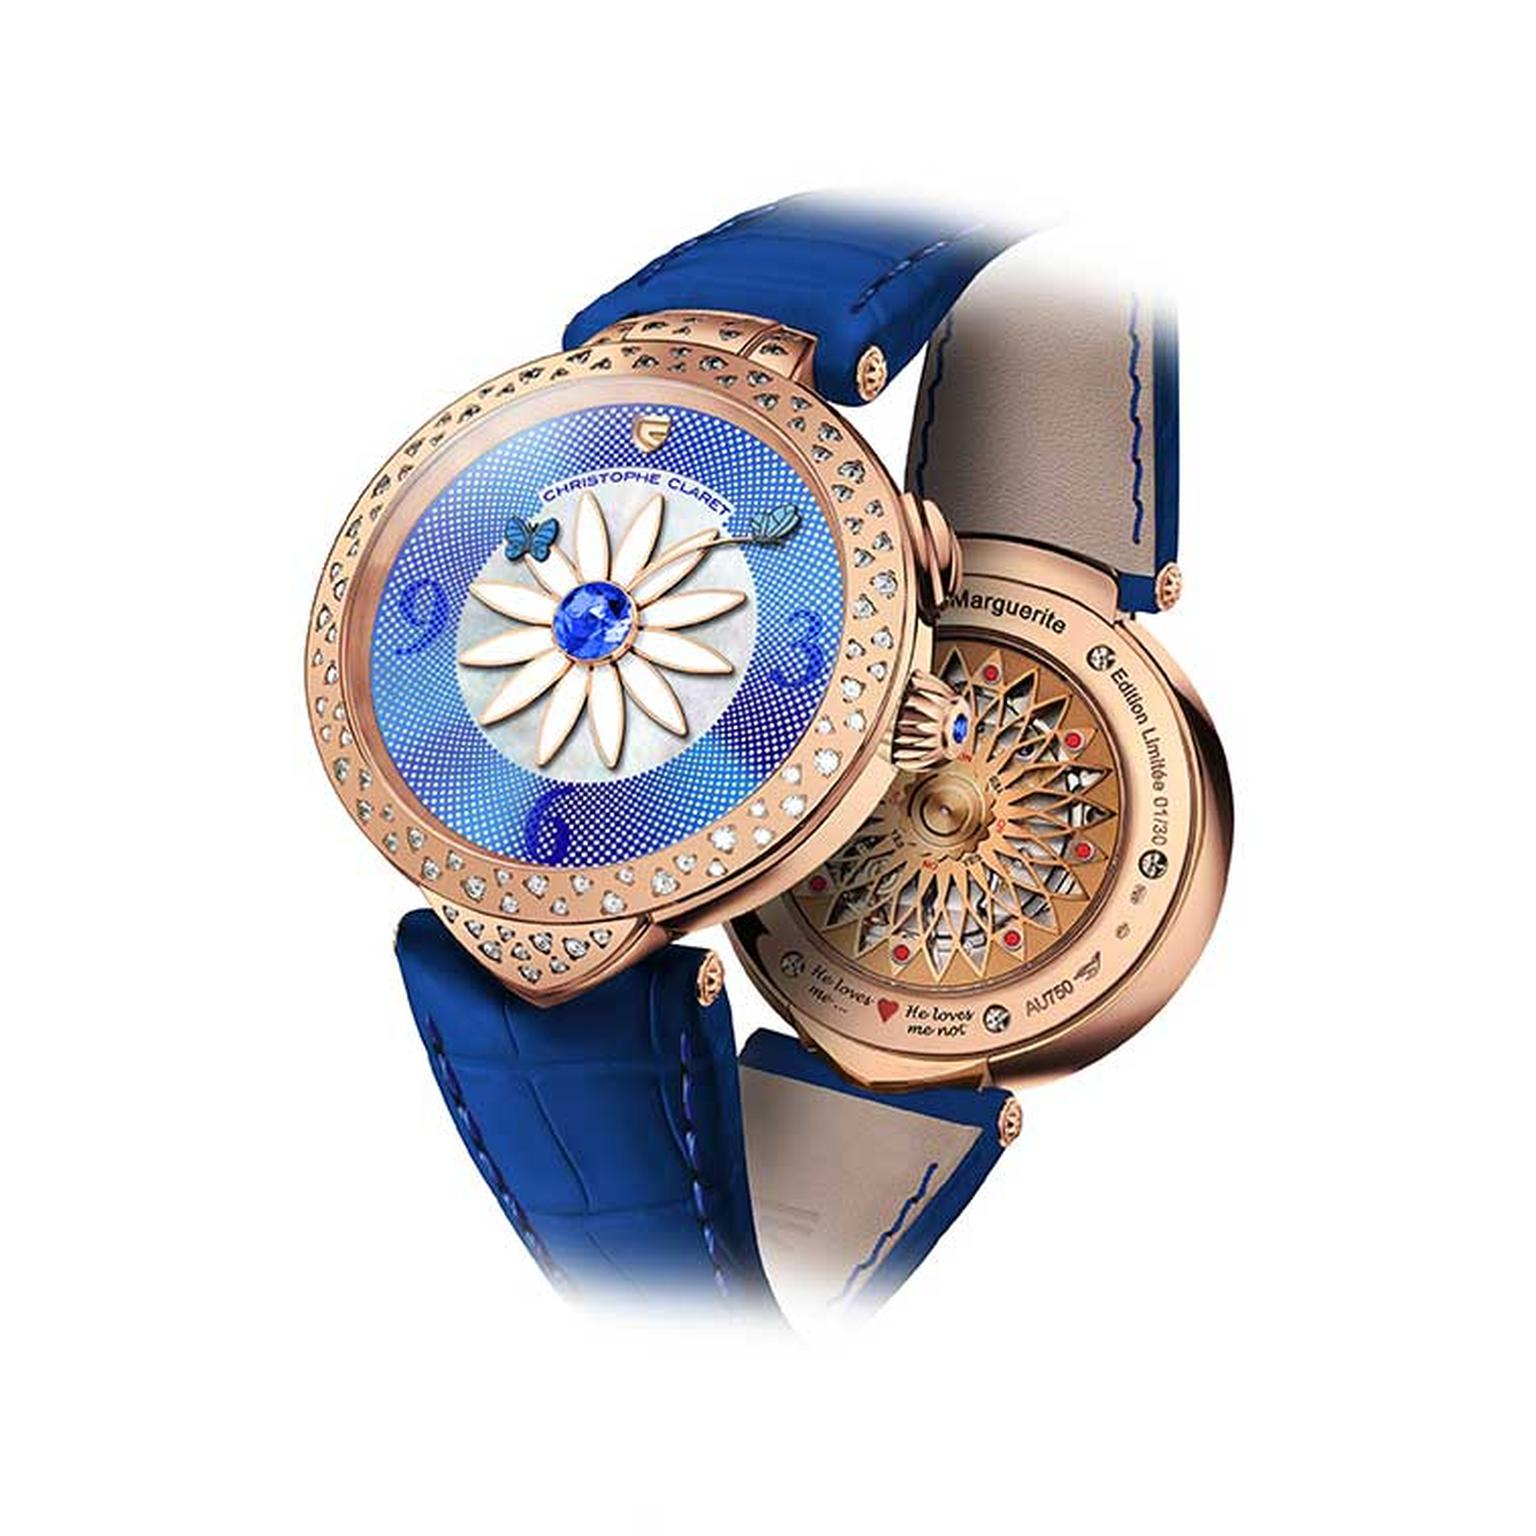 Christophe Claret Marguerite ladies' watch